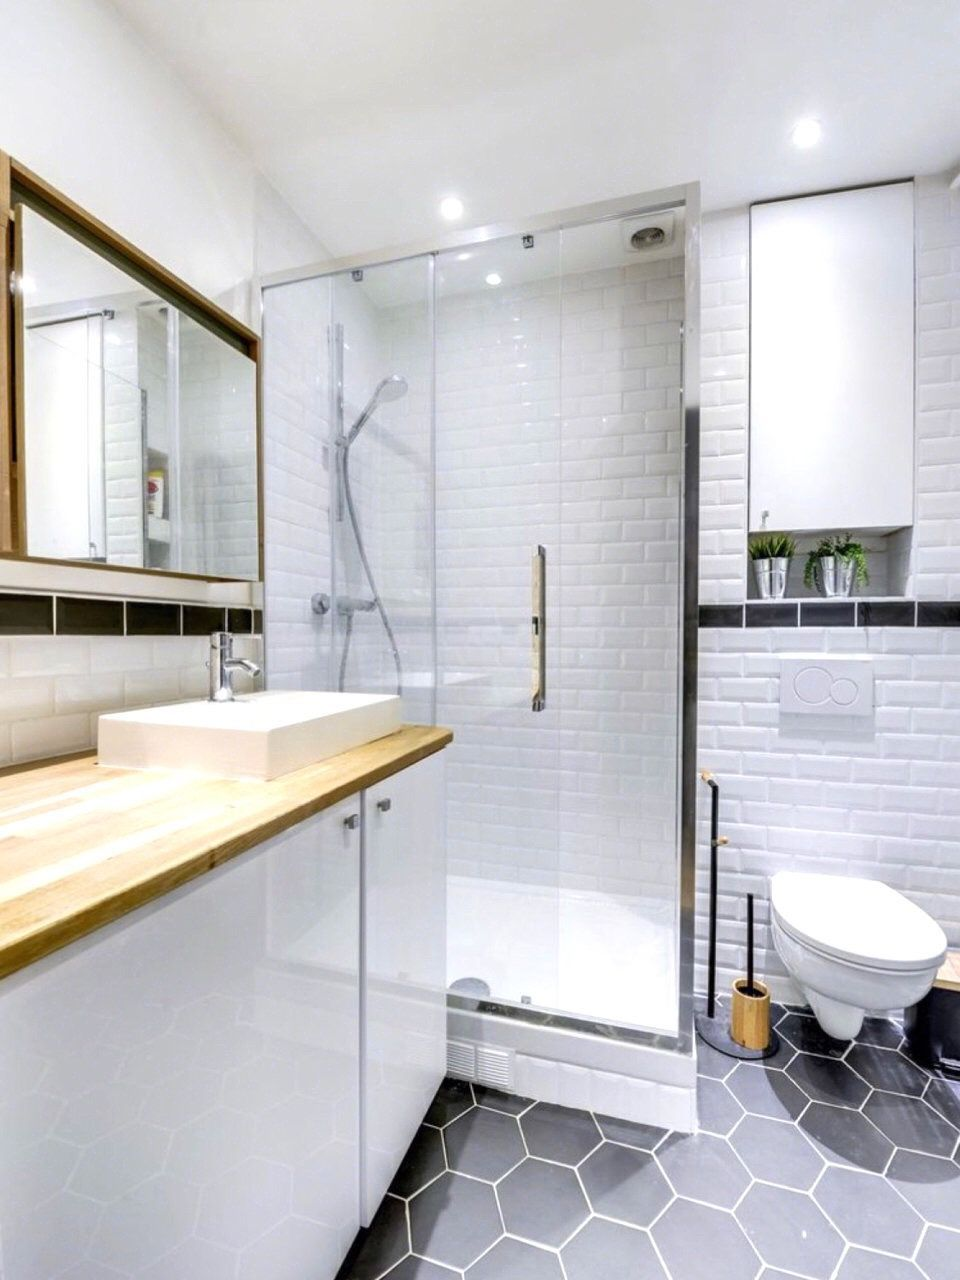 2019 Bathroom Trends That You Don T Want To Miss In 2020 Modern Bathroom Decor Bathroom Wallpaper Modern Bathroom Design